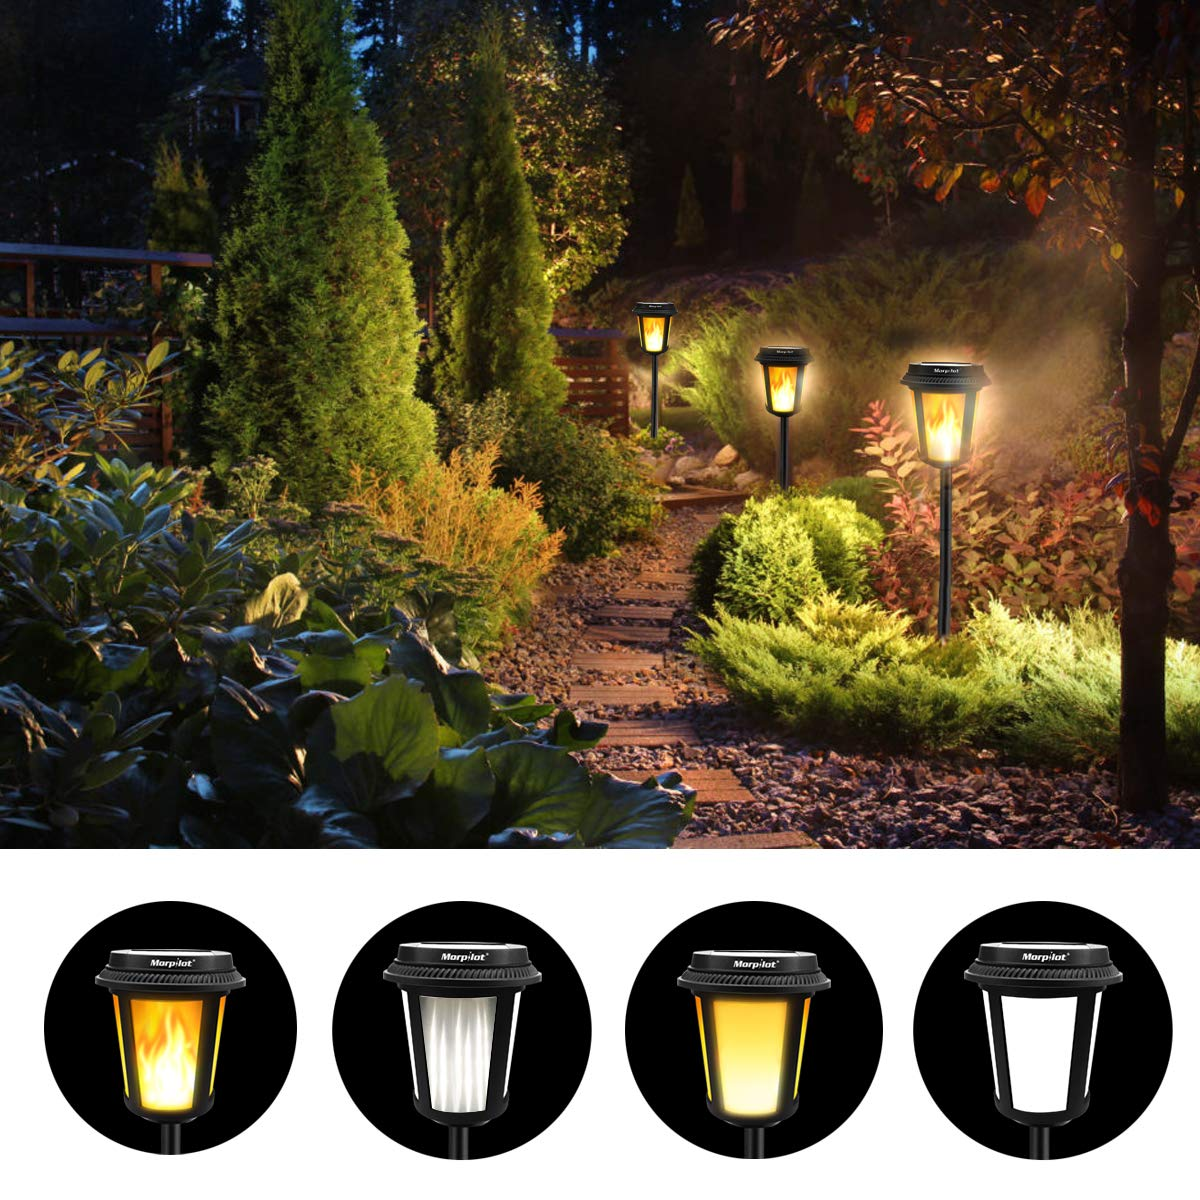 Keenstone Solar Torch Lights | Versatile Solar Path Light Outdoor Waterproof Dual Modes Solar Light Landscape Decoration Lighting Dusk to Dawn Auto On/Off (2 Pack)